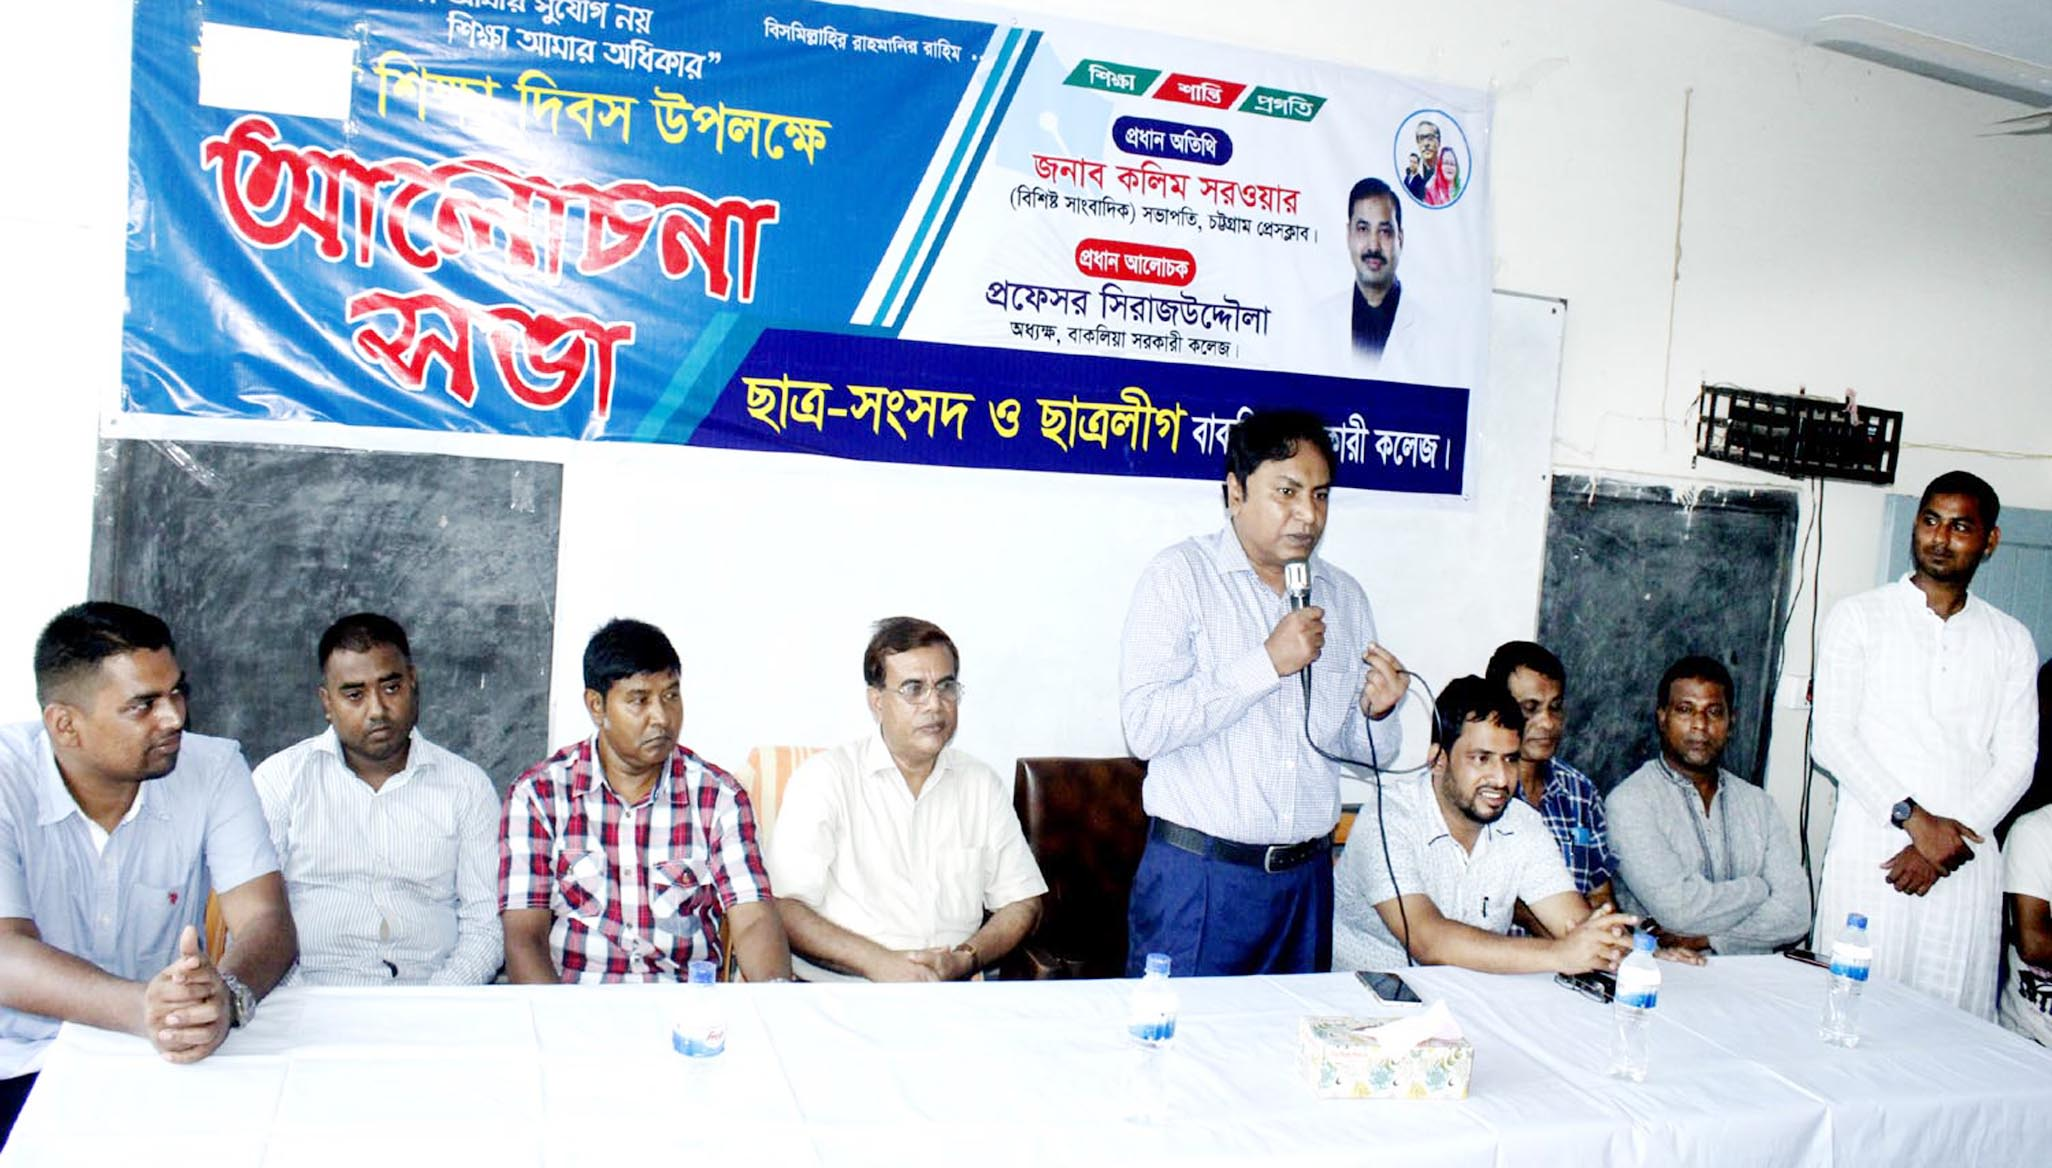 Kalim Sarwar, President, Chattogram Press Club speaking at a discussion meeting on the occasion of the Education Day  organised by Chhatra League, Bakliya Govt College  recently.